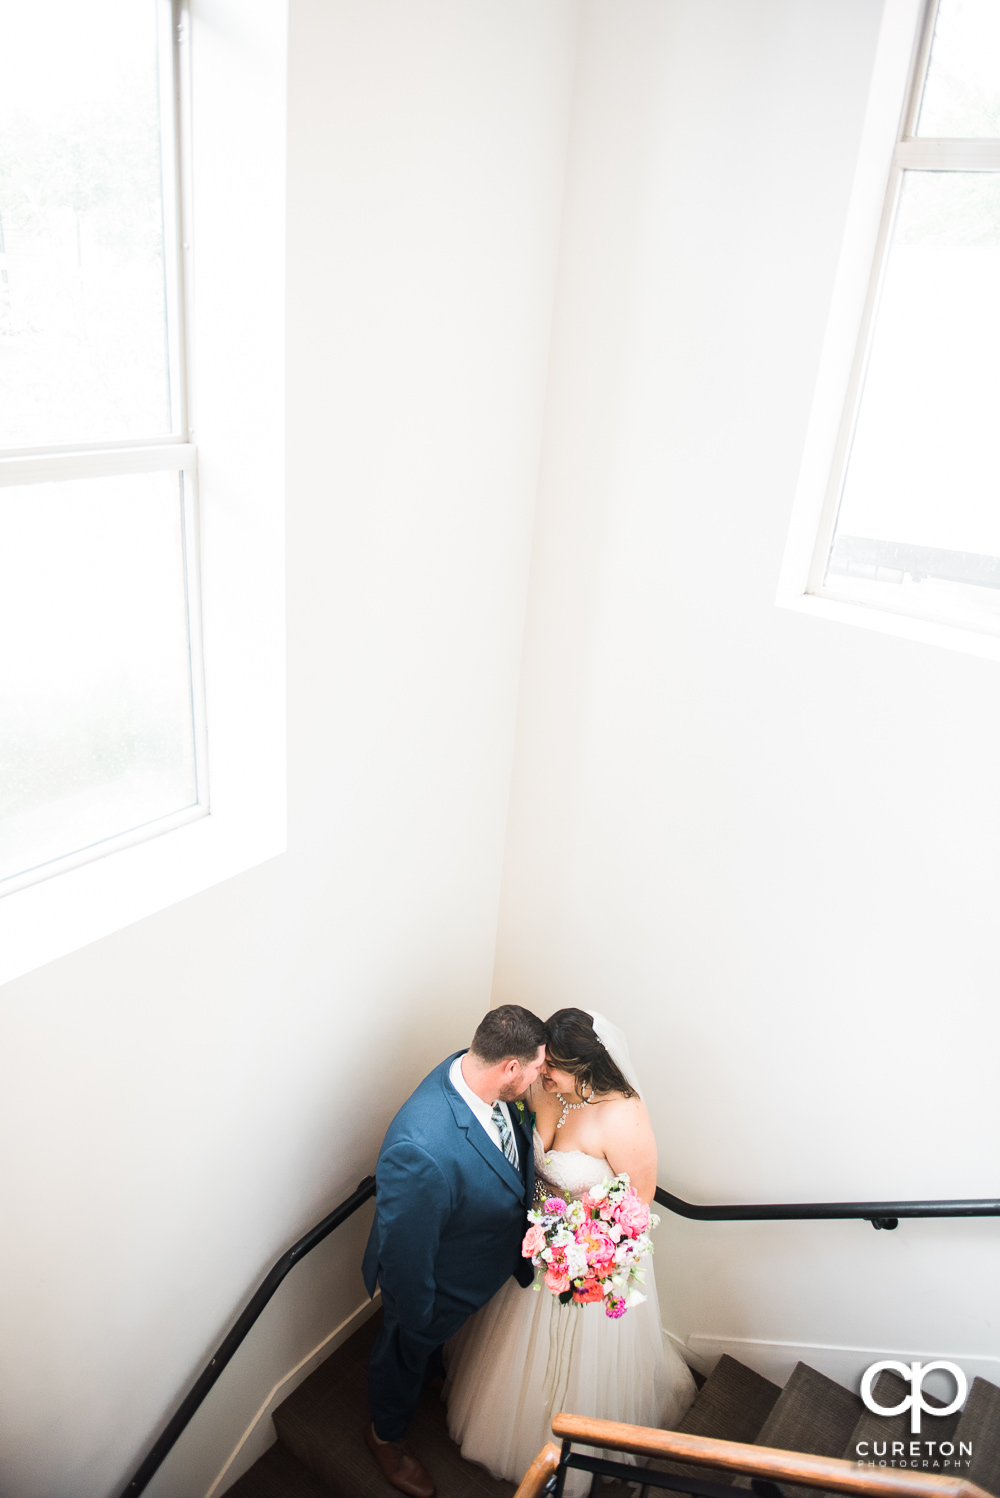 Bride and groom on stairs after their Huguenot Loft wedding in Greenville,SC.